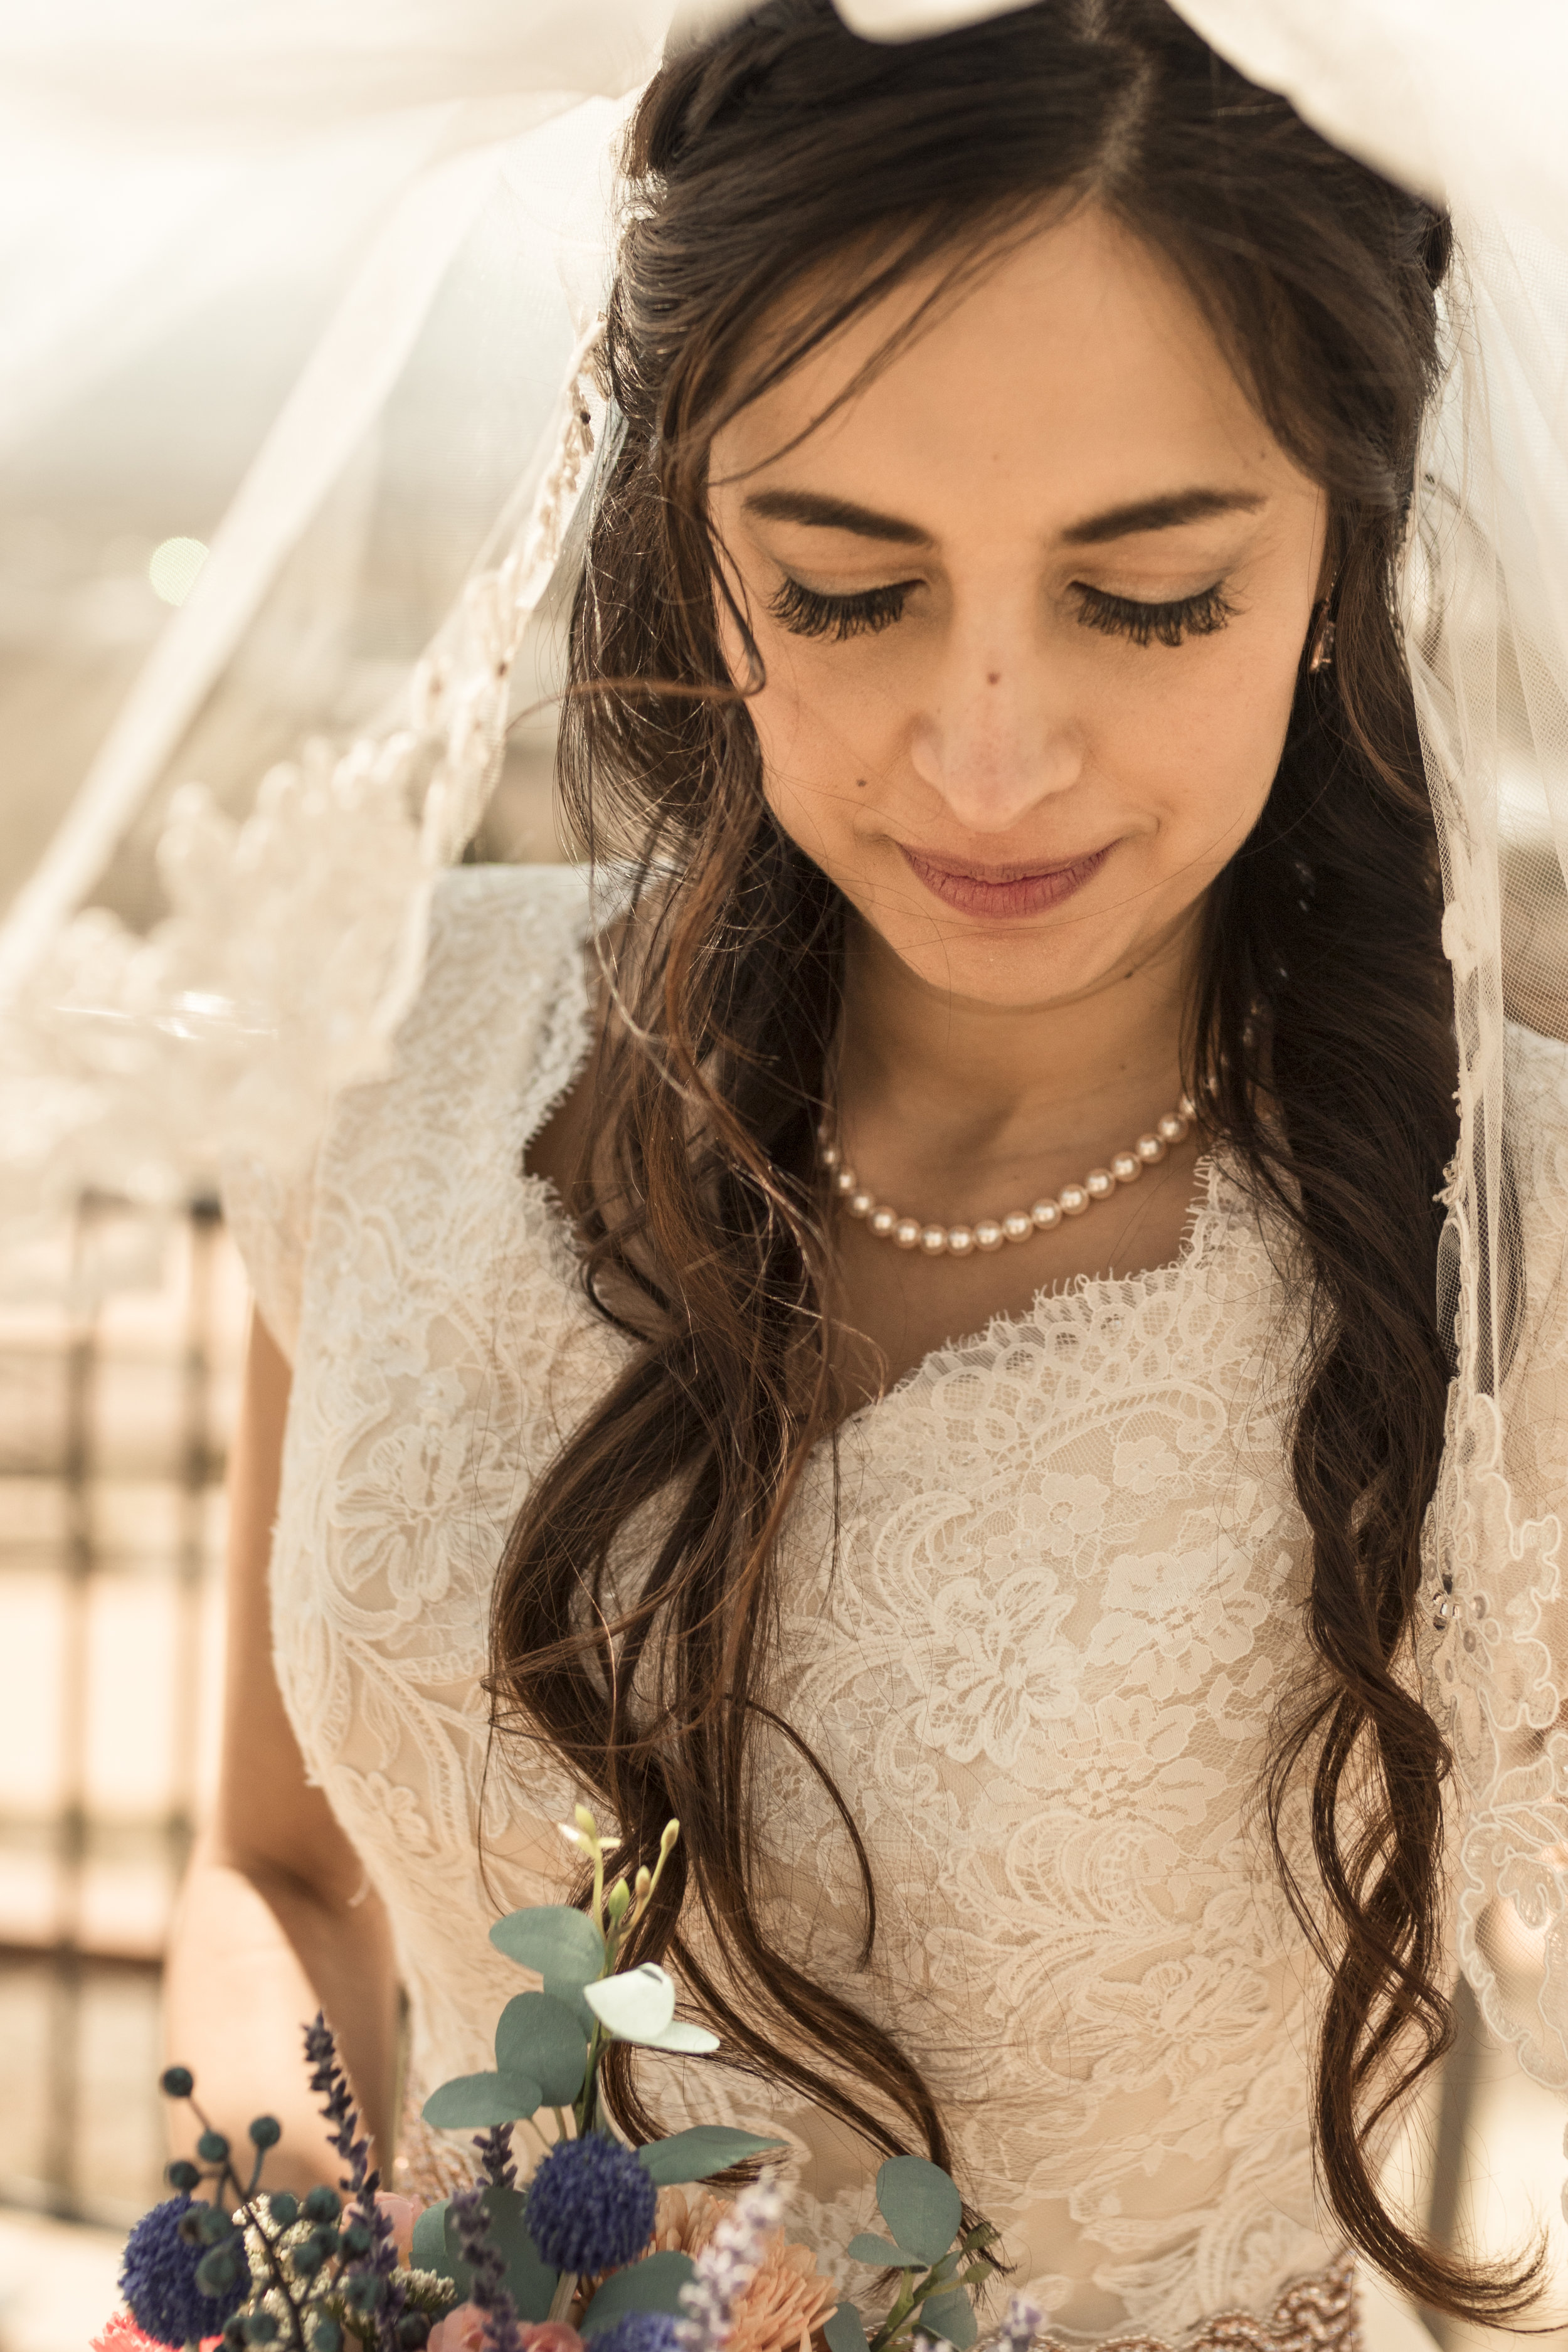 Spring Bridal Session at Red Butte Gardenby Bri Bergman Photography03.JPG